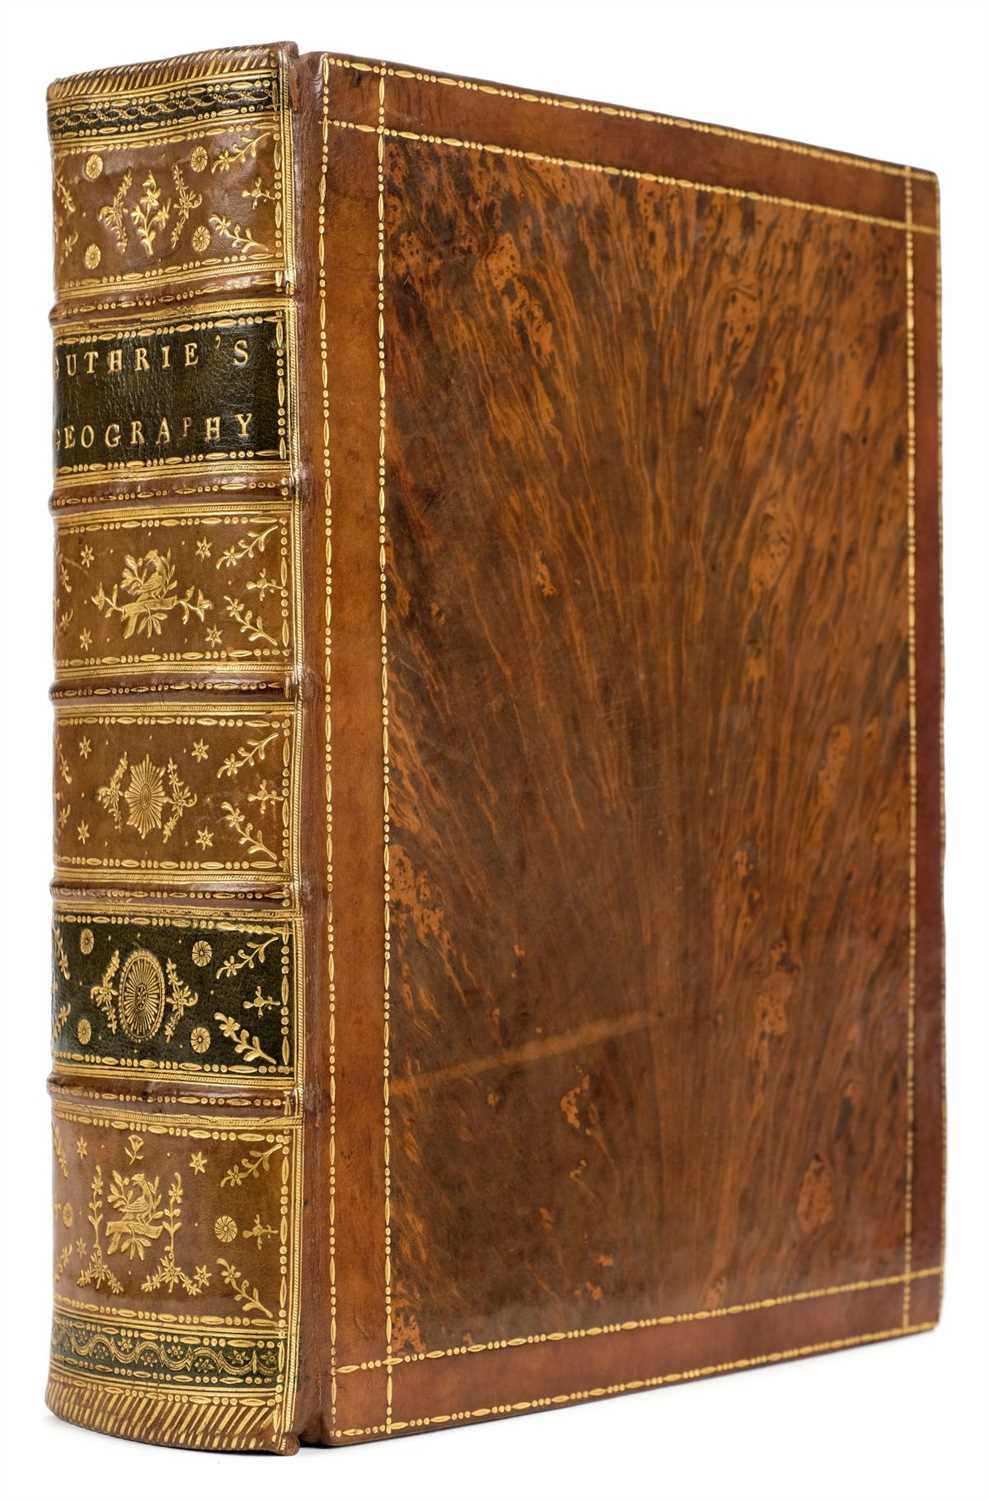 Lot 309 - Guthrie (William). A New System of Modern Geography, 1792